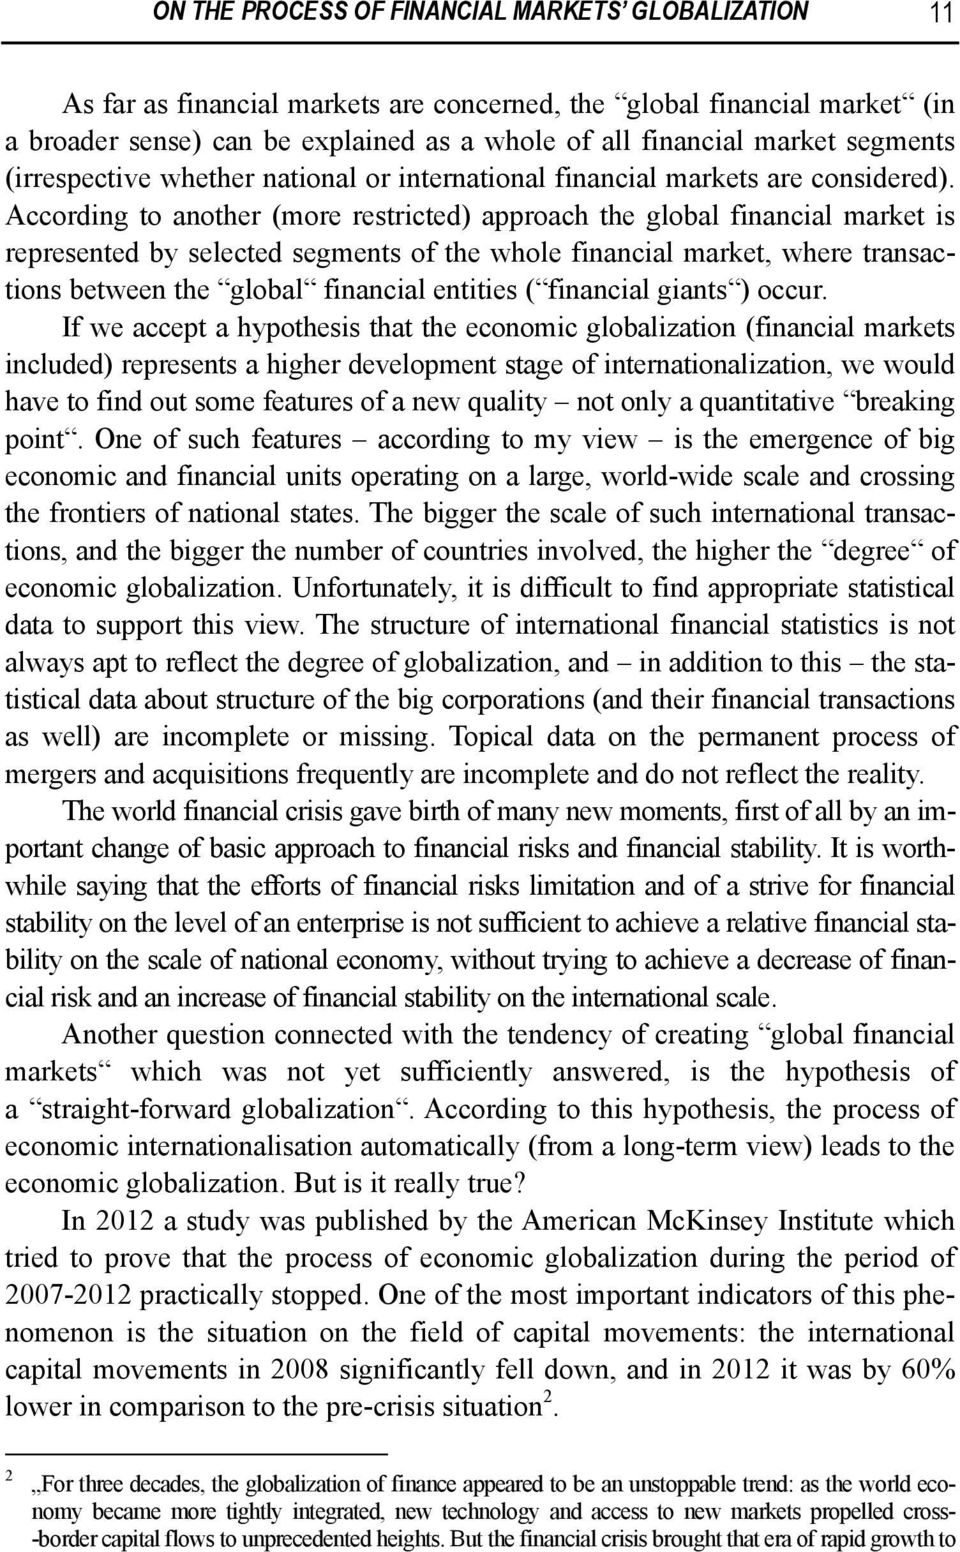 According to another (more restricted) approach the global financial market is represented by selected segments of the whole financial market, where transactions between the global financial entities